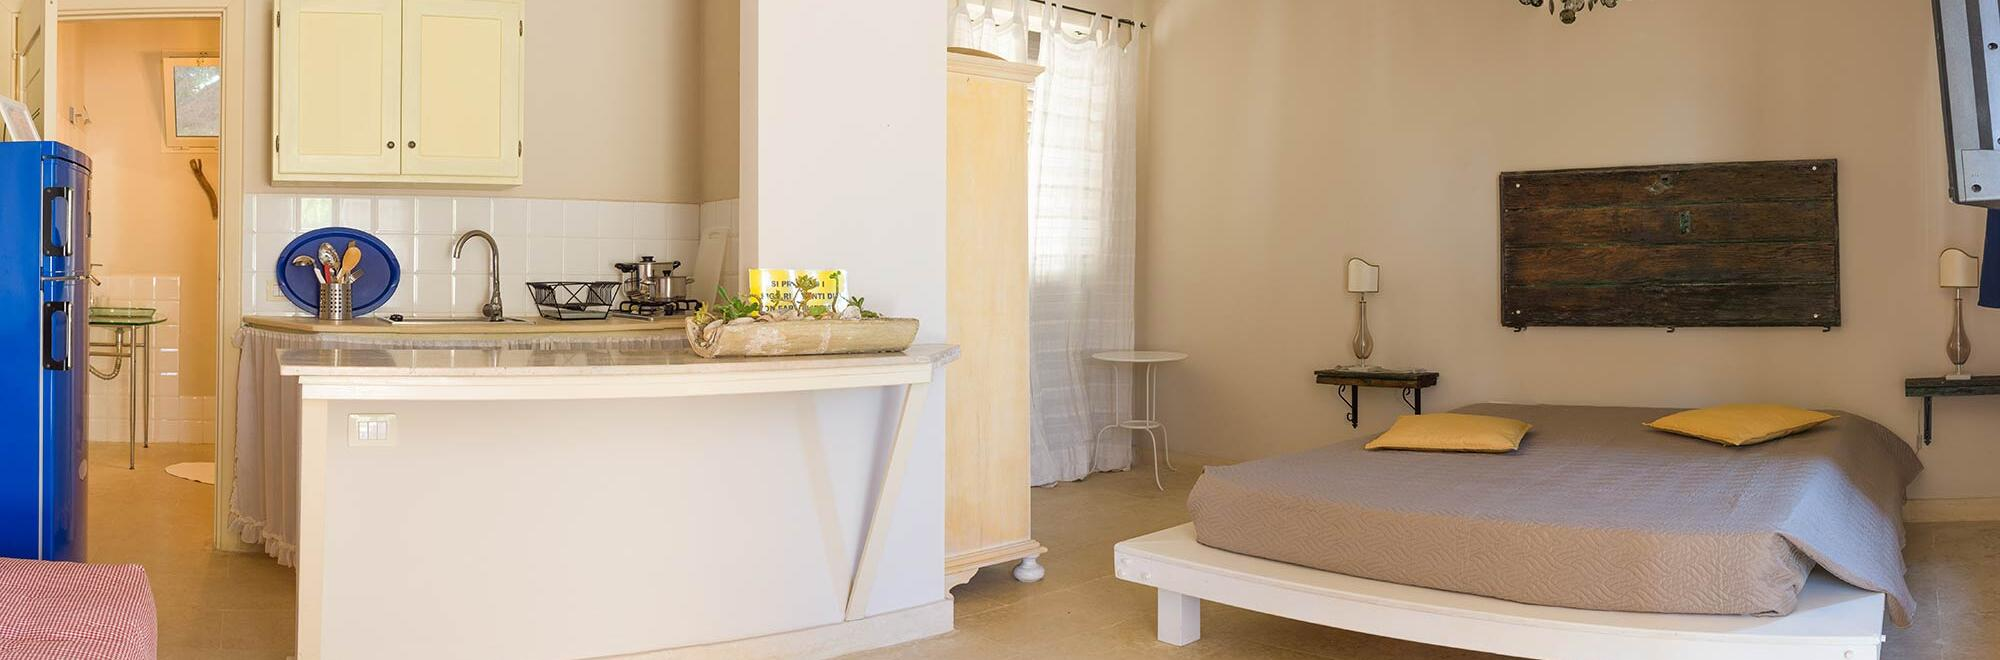 Bungalow in Gallipoli: camping with bungalows in Salento